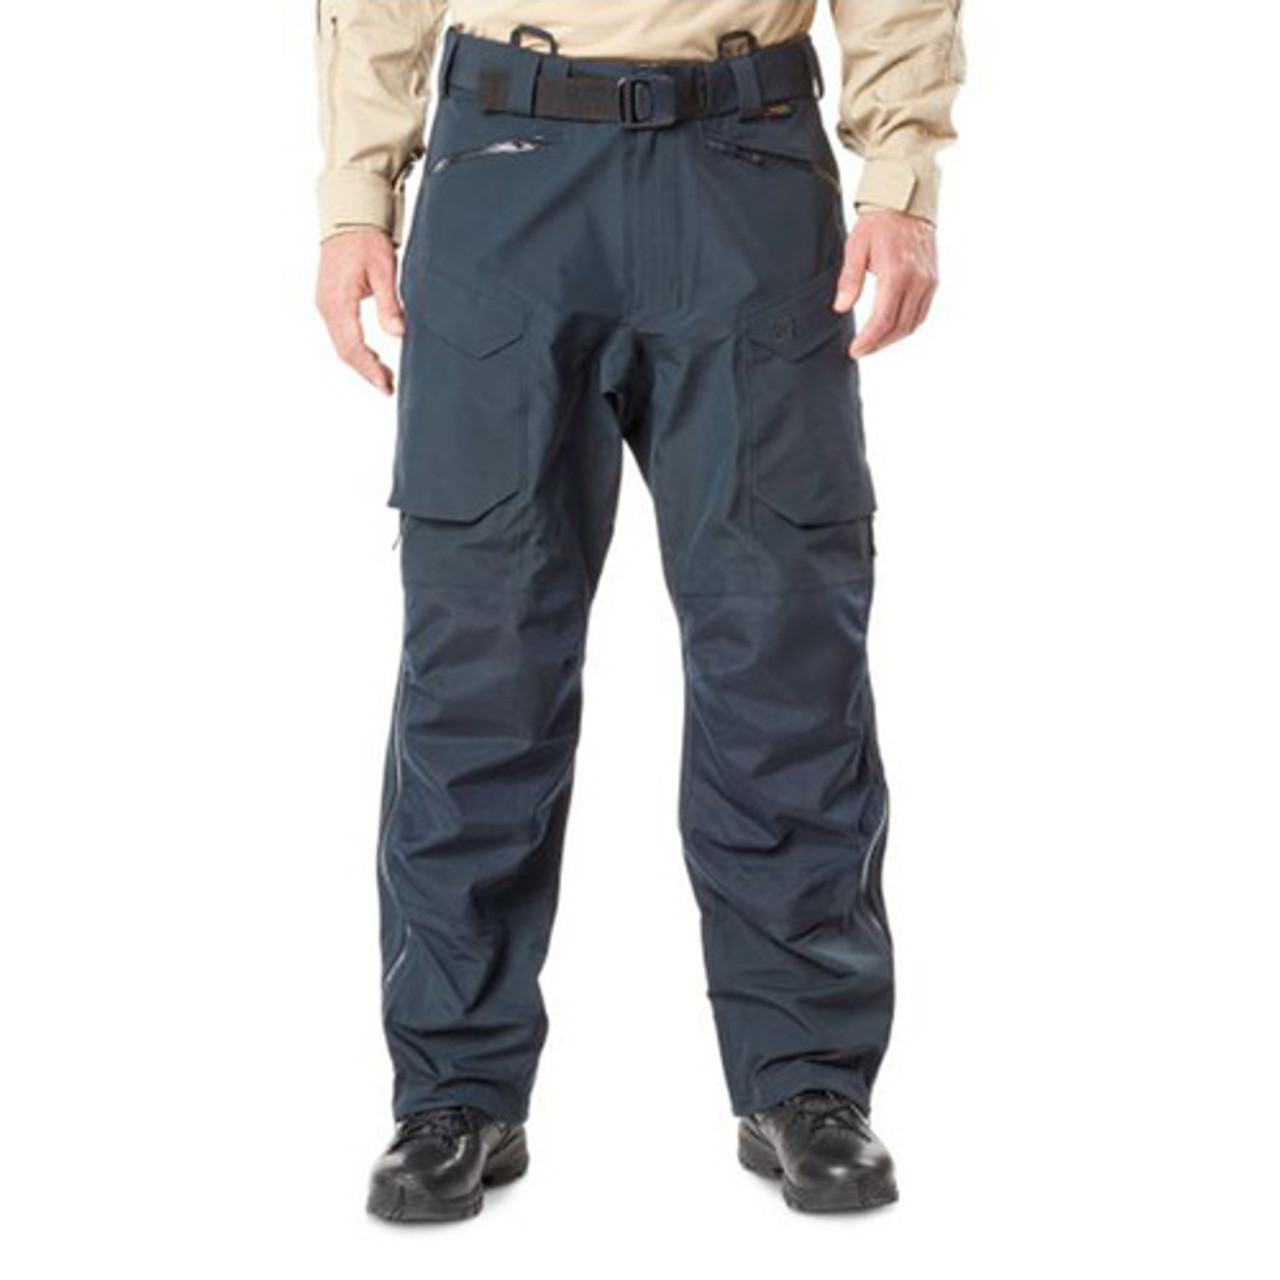 5.11 Tactical 48333 XPRT® Waterproof Men's Pants, Breathable, Adjustable Waist, Relaxed Fit, 100% Nylon, Ammo Pocket, available in Black and Dark Navy